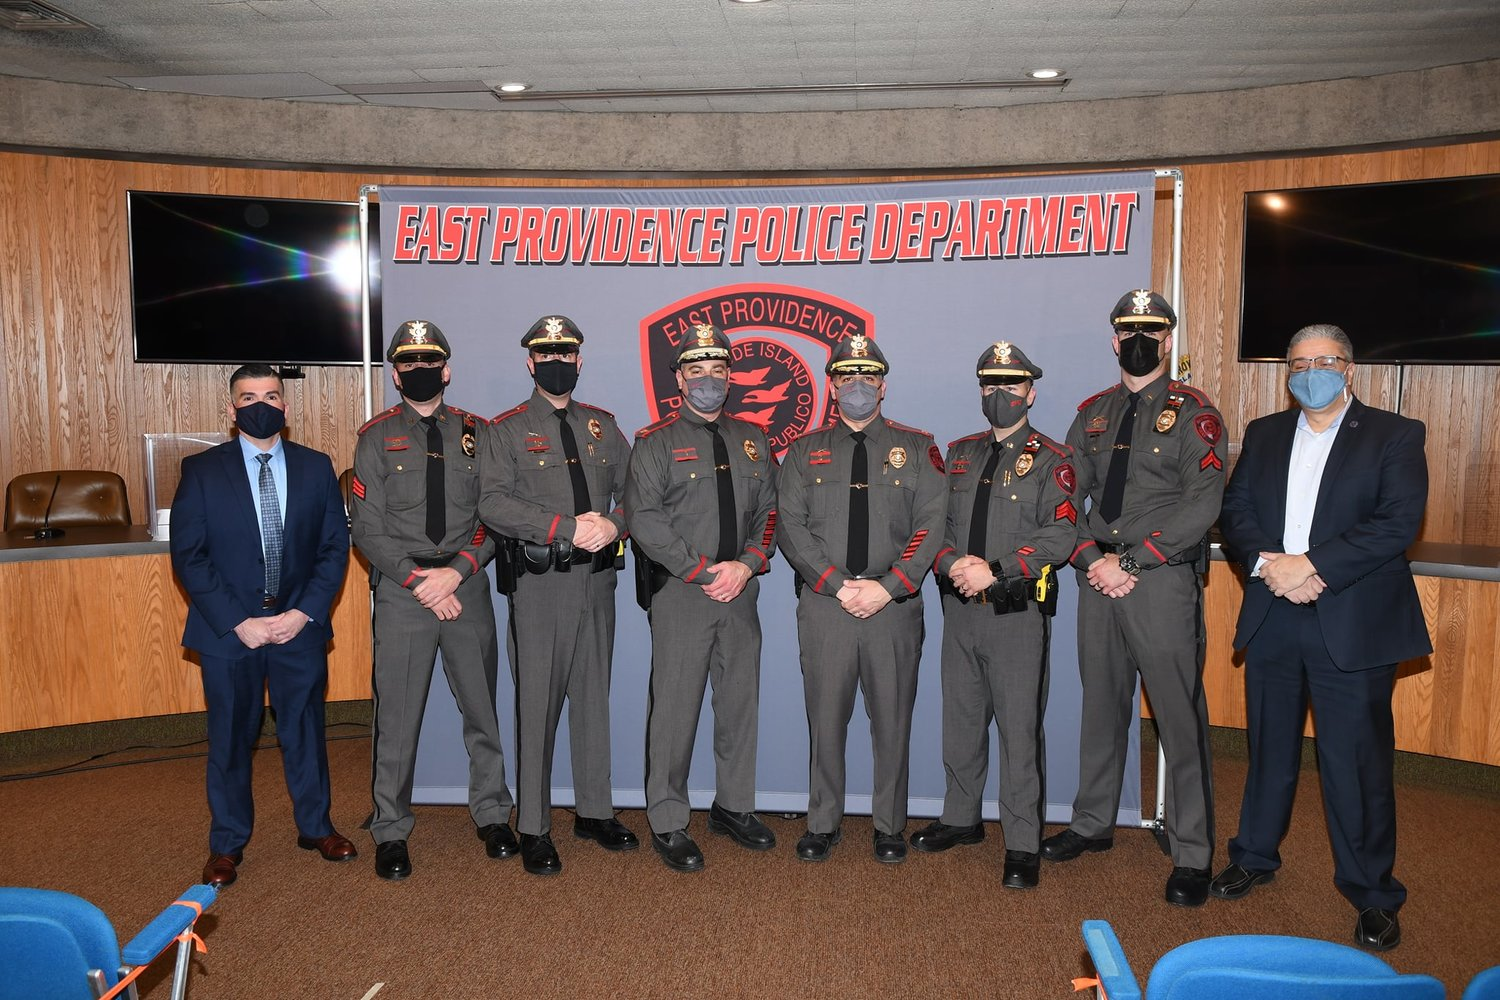 Lt. Michael Rapoza, Sgt. Stephen Rodrigues, Sgt. Andrew Dubois, Detective Corporal Warren Caldwell and Detective Corporal Dennis Medeiros on their promotions! All were formally sworn in by Mayor DaSilva late last month.